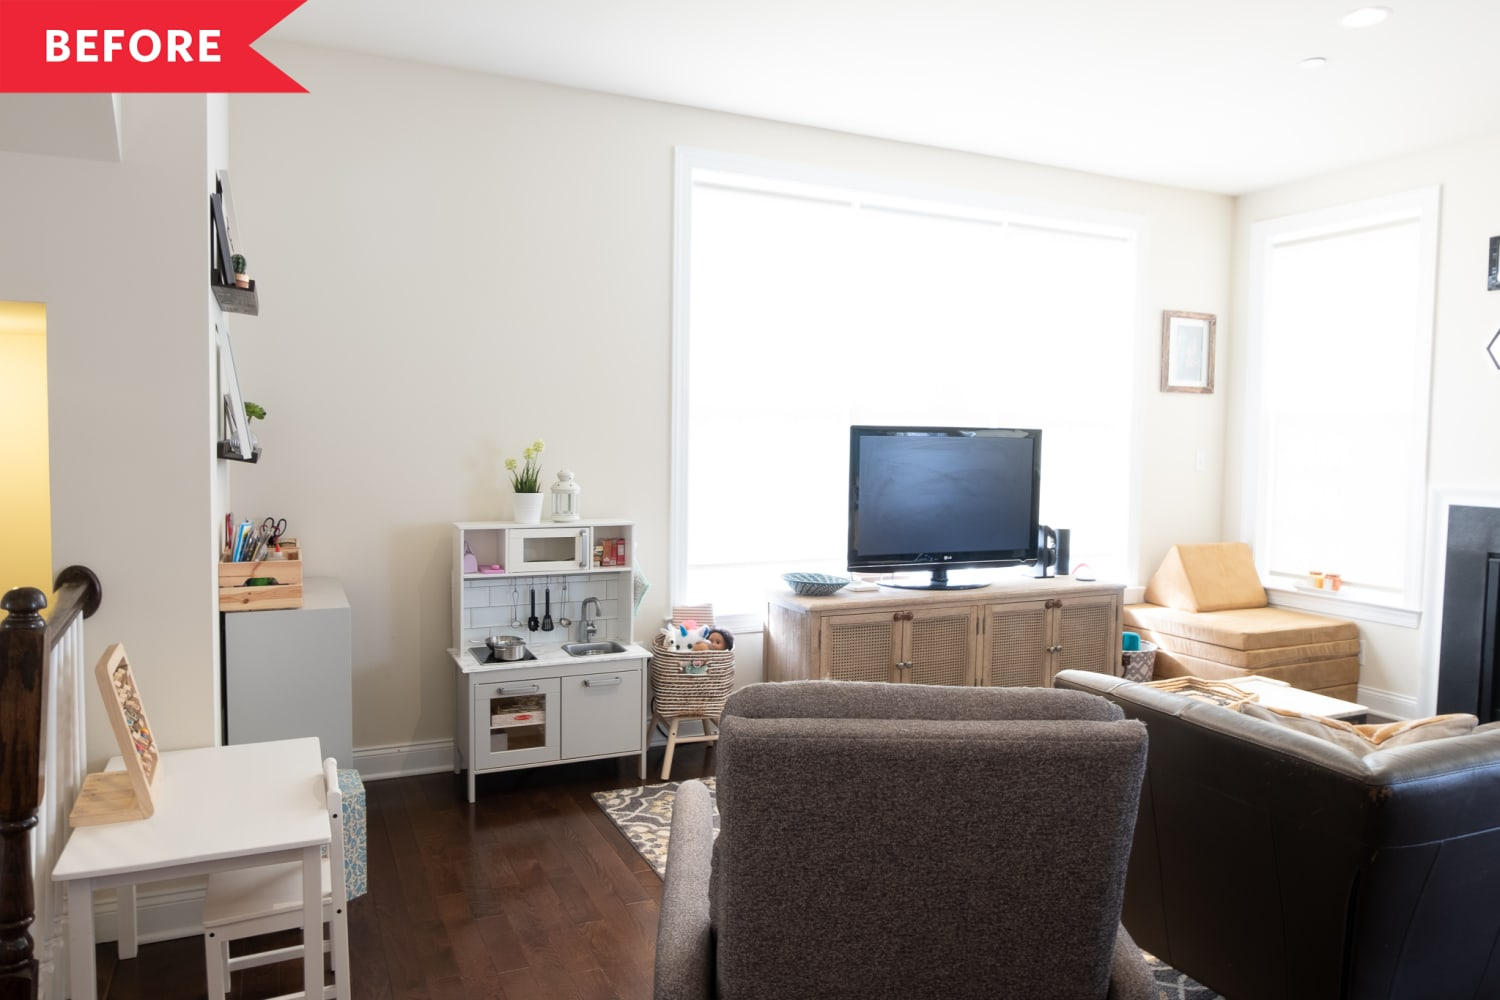 Before and After: A $500 Living Room Redo Features a Bold Wall Color and Lots of Cozy Vibes